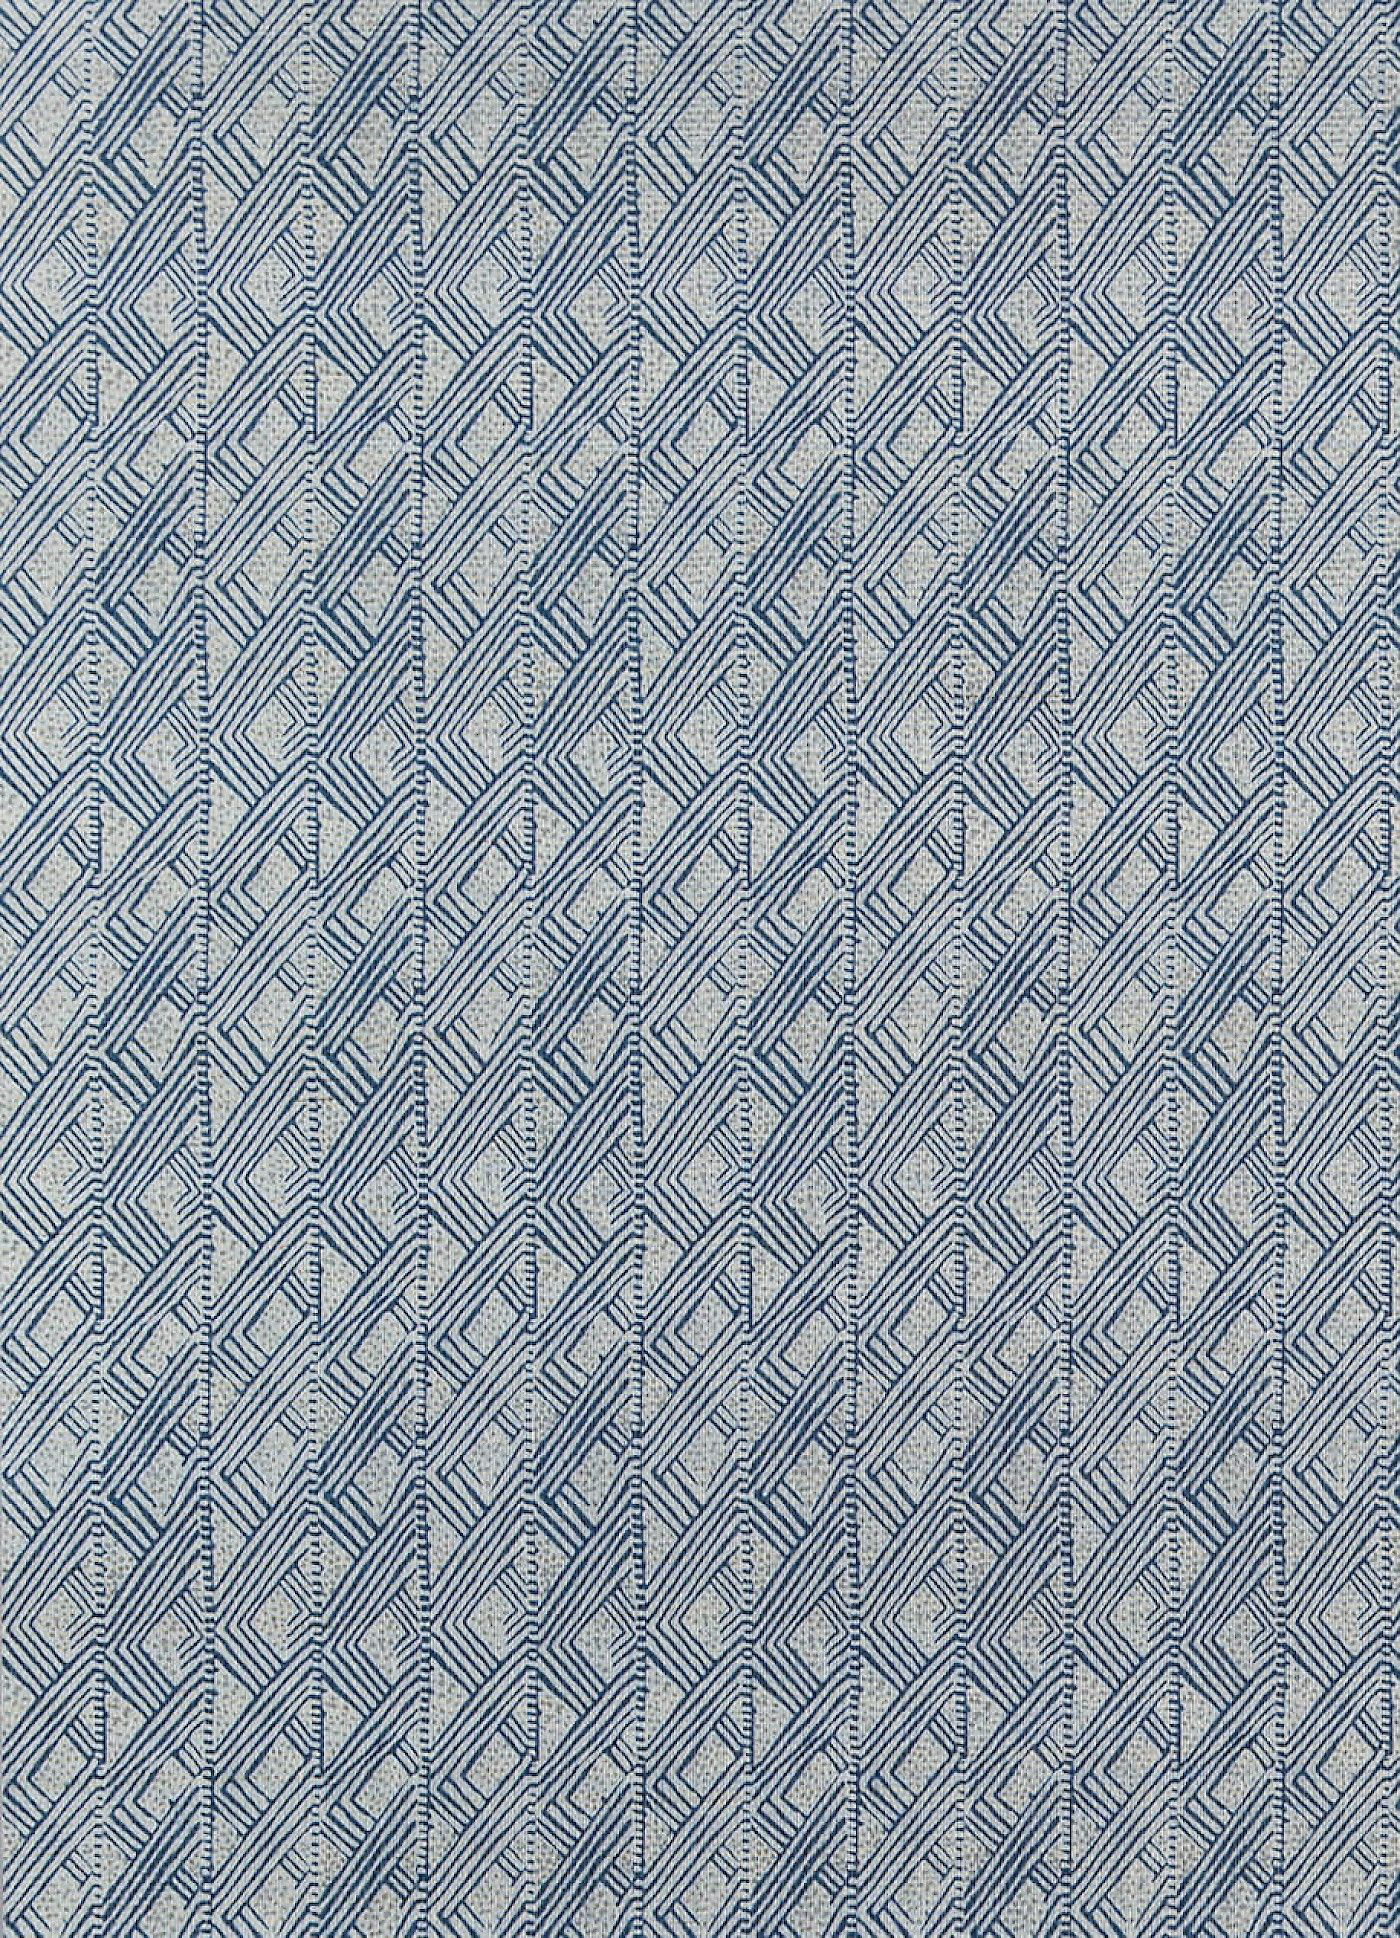 Papier Peint Gp Decor Belge Christopher Farr Cloth Raffia Wallpaper Papier Peint